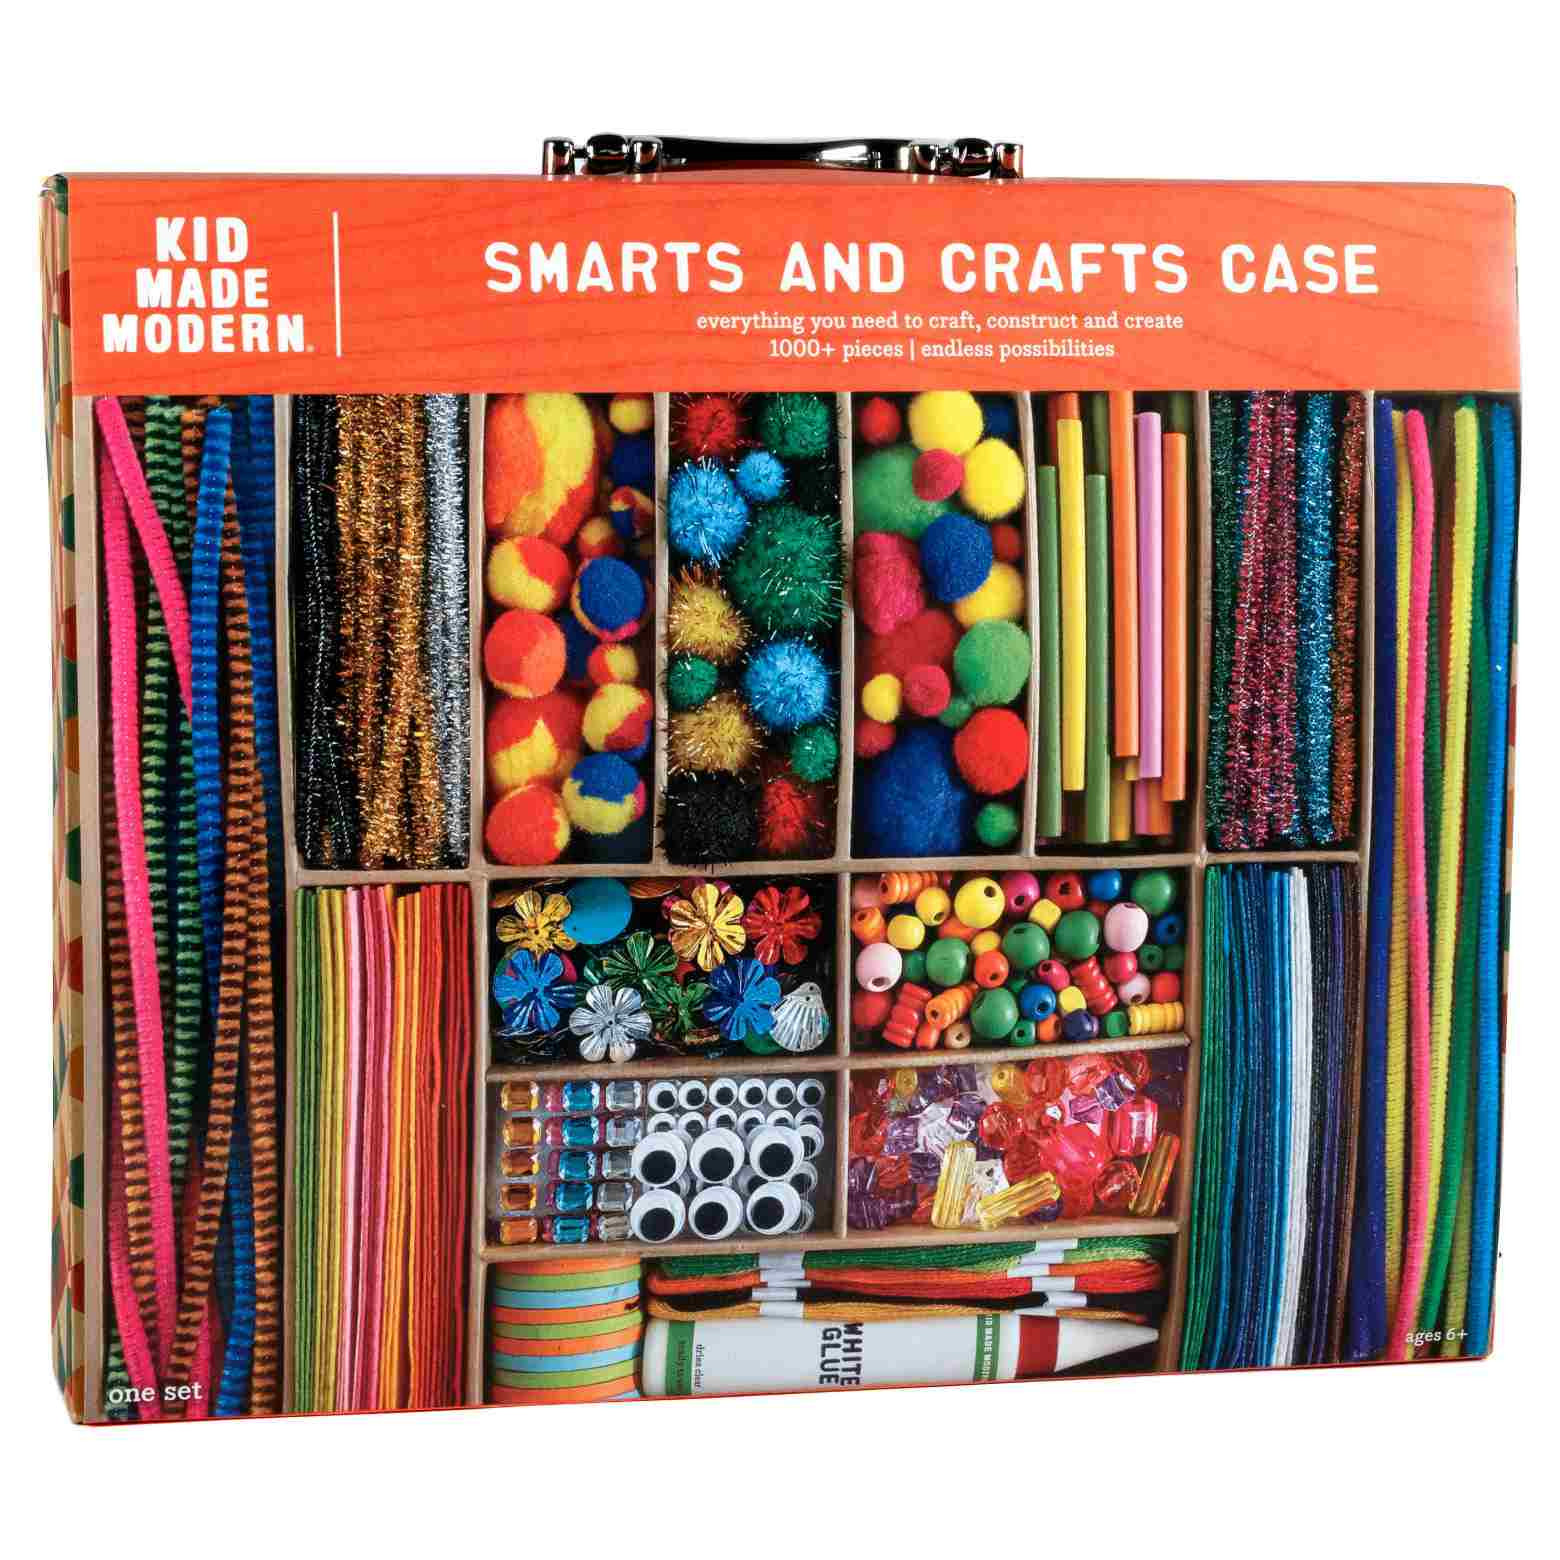 Craft Kit For Kids  The 9 Best Craft Kits for Kids in 2020